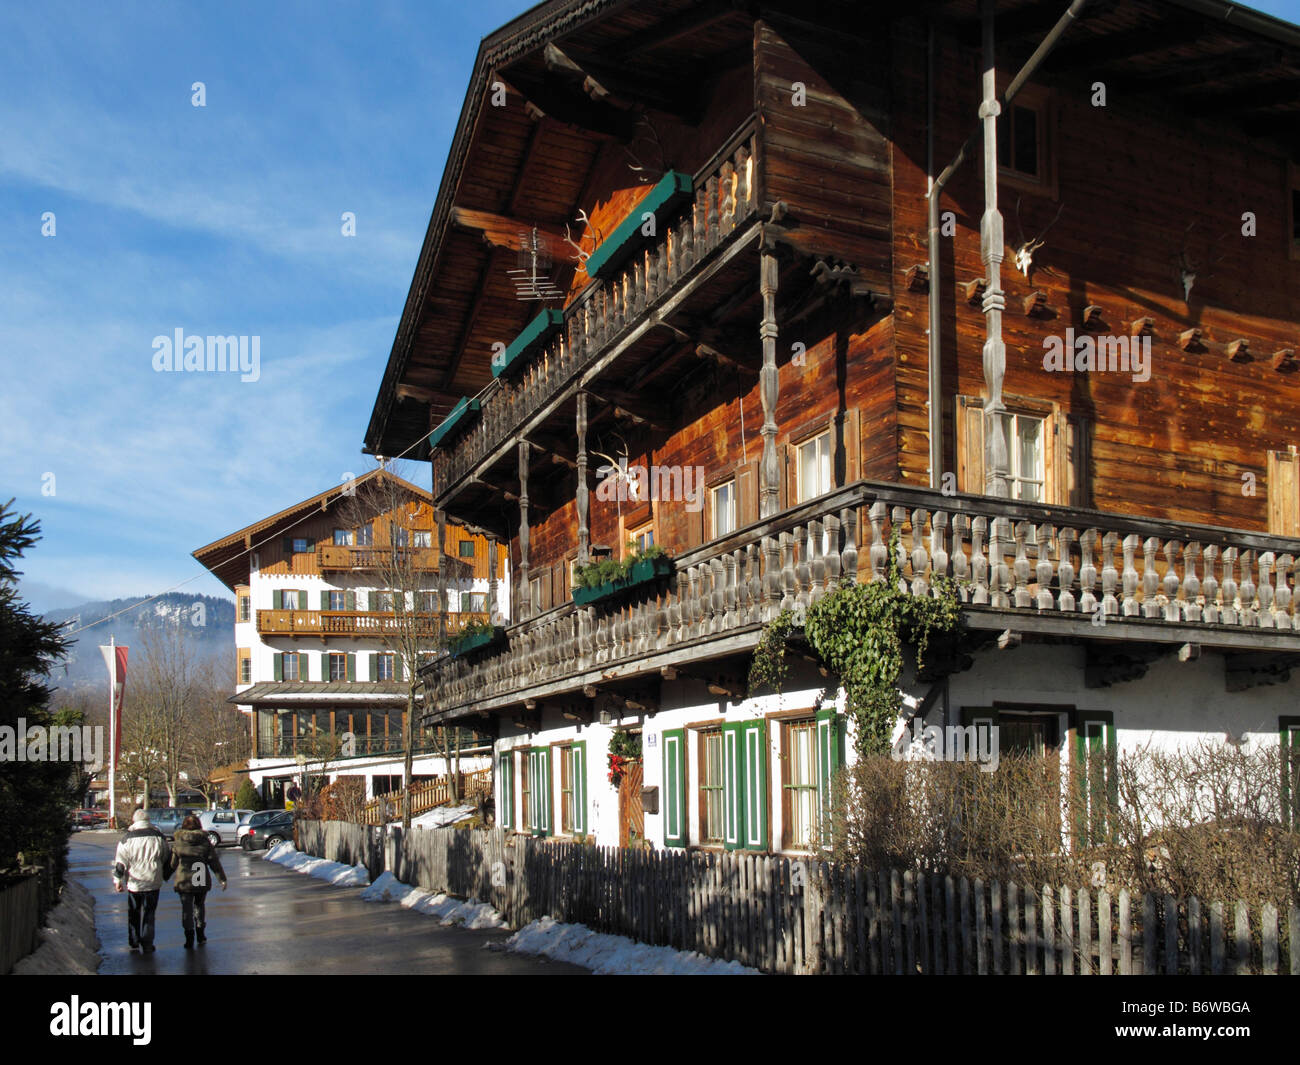 Typical Tyrolean houses in the village of Achenkirch, Lake Achensee, Tyrol, Austria - Stock Image